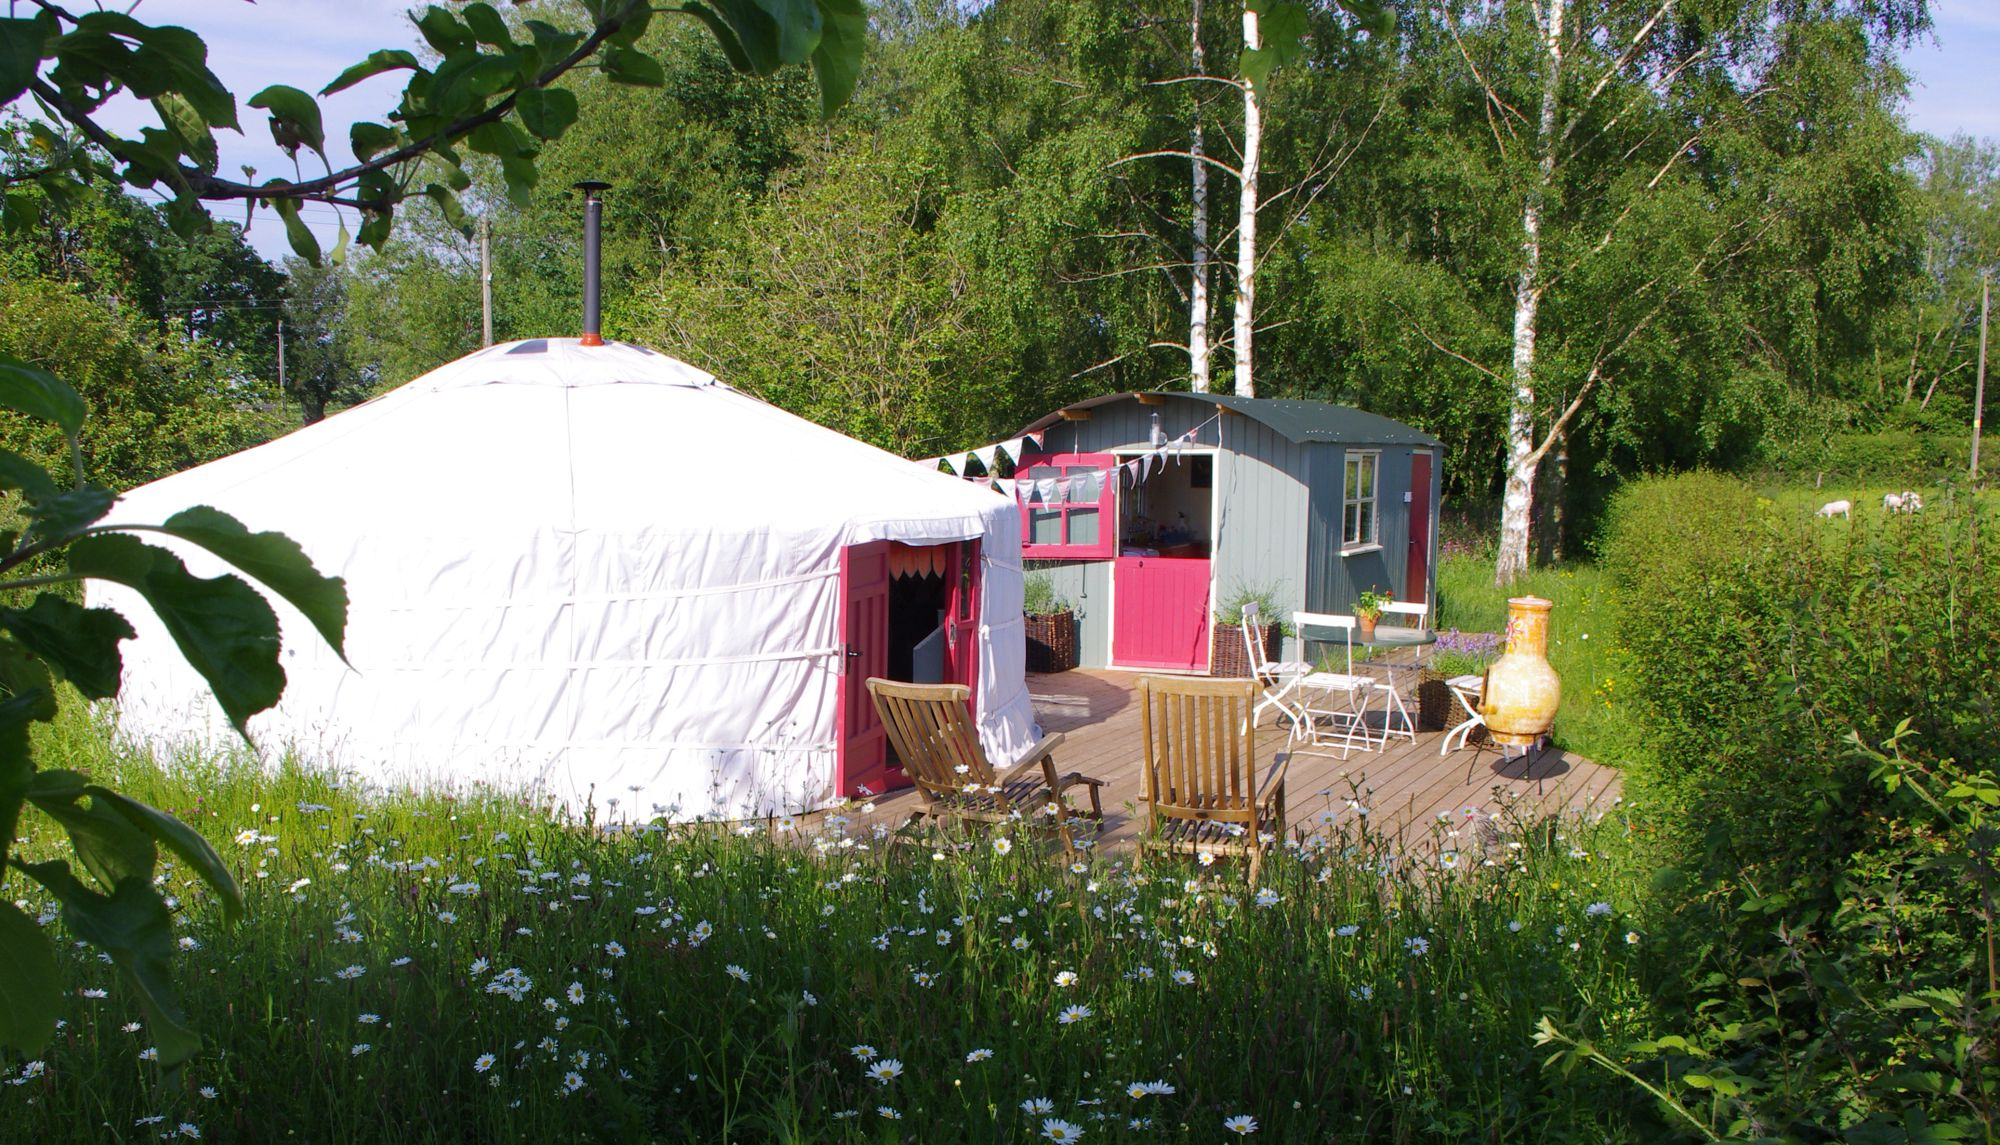 There's luxury camping and then there's The Yurt at Midland Farm.